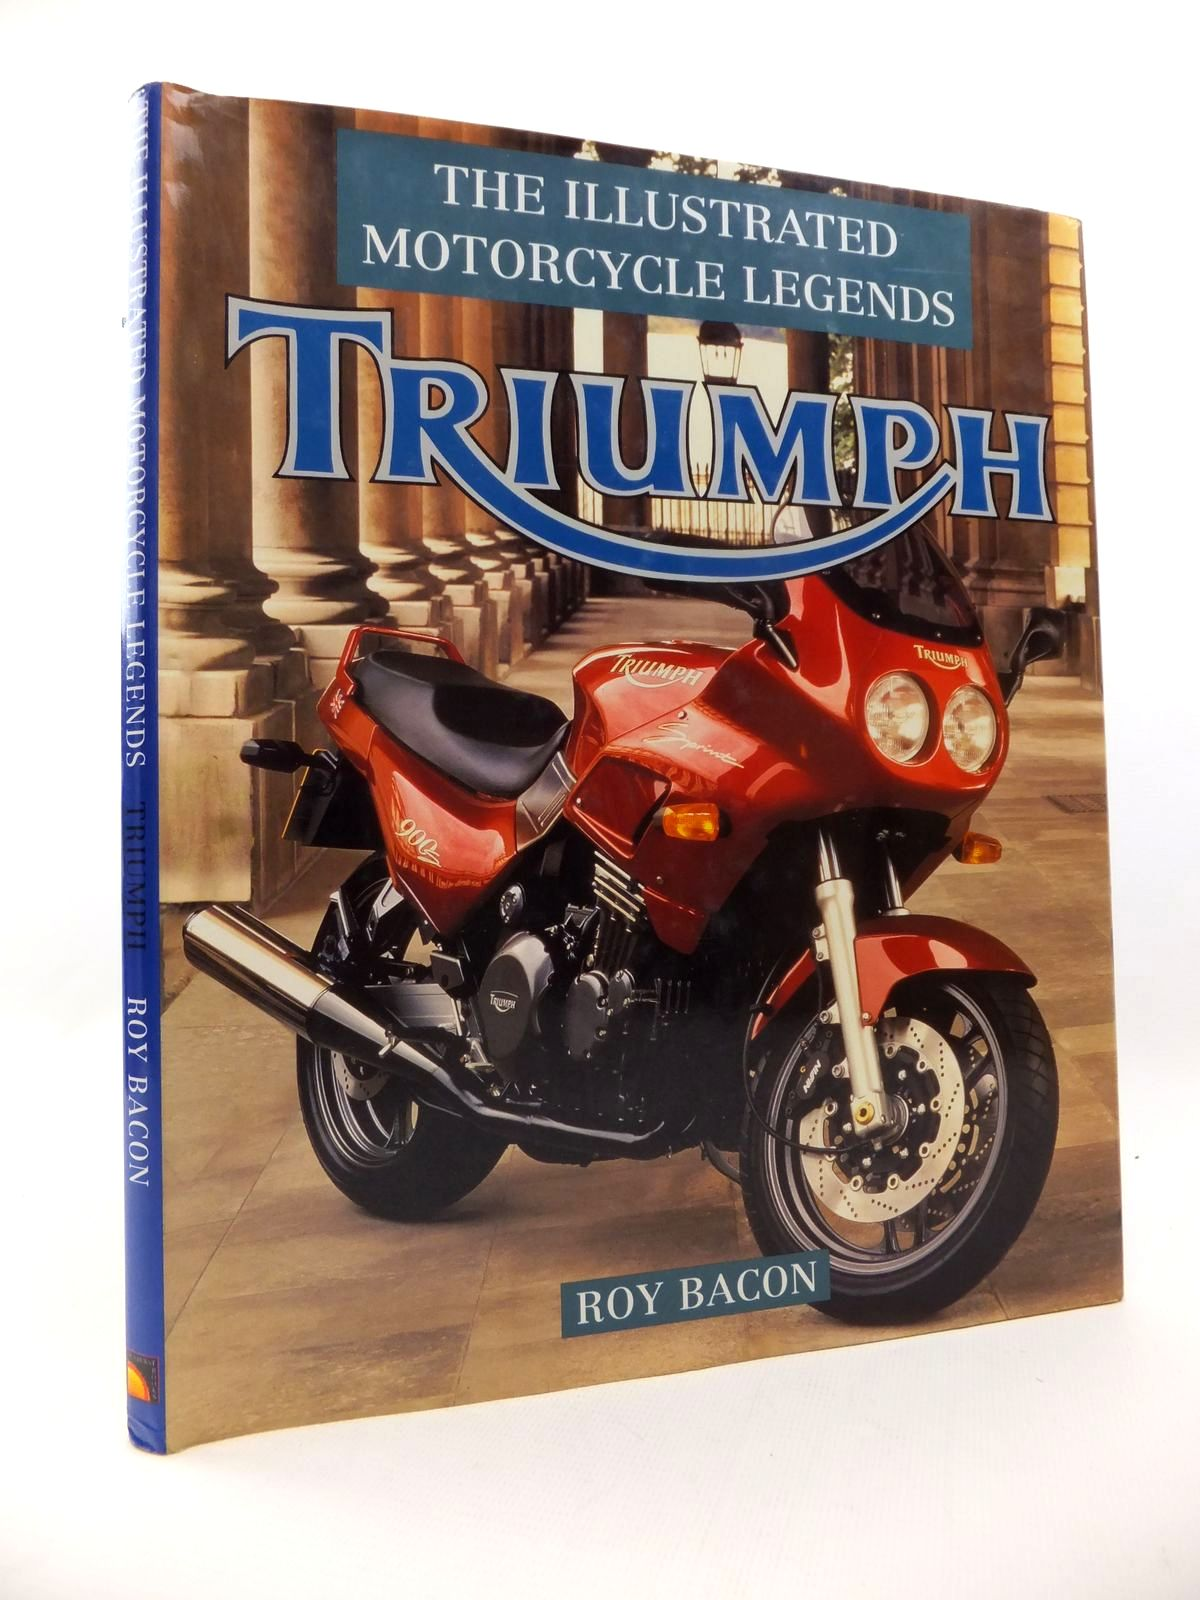 Photo of THE ILLUSTRATED MOTORCYCLE LEGENDS TRIUMPH written by Bacon, Roy published by Sunburst Books (STOCK CODE: 1813142)  for sale by Stella & Rose's Books